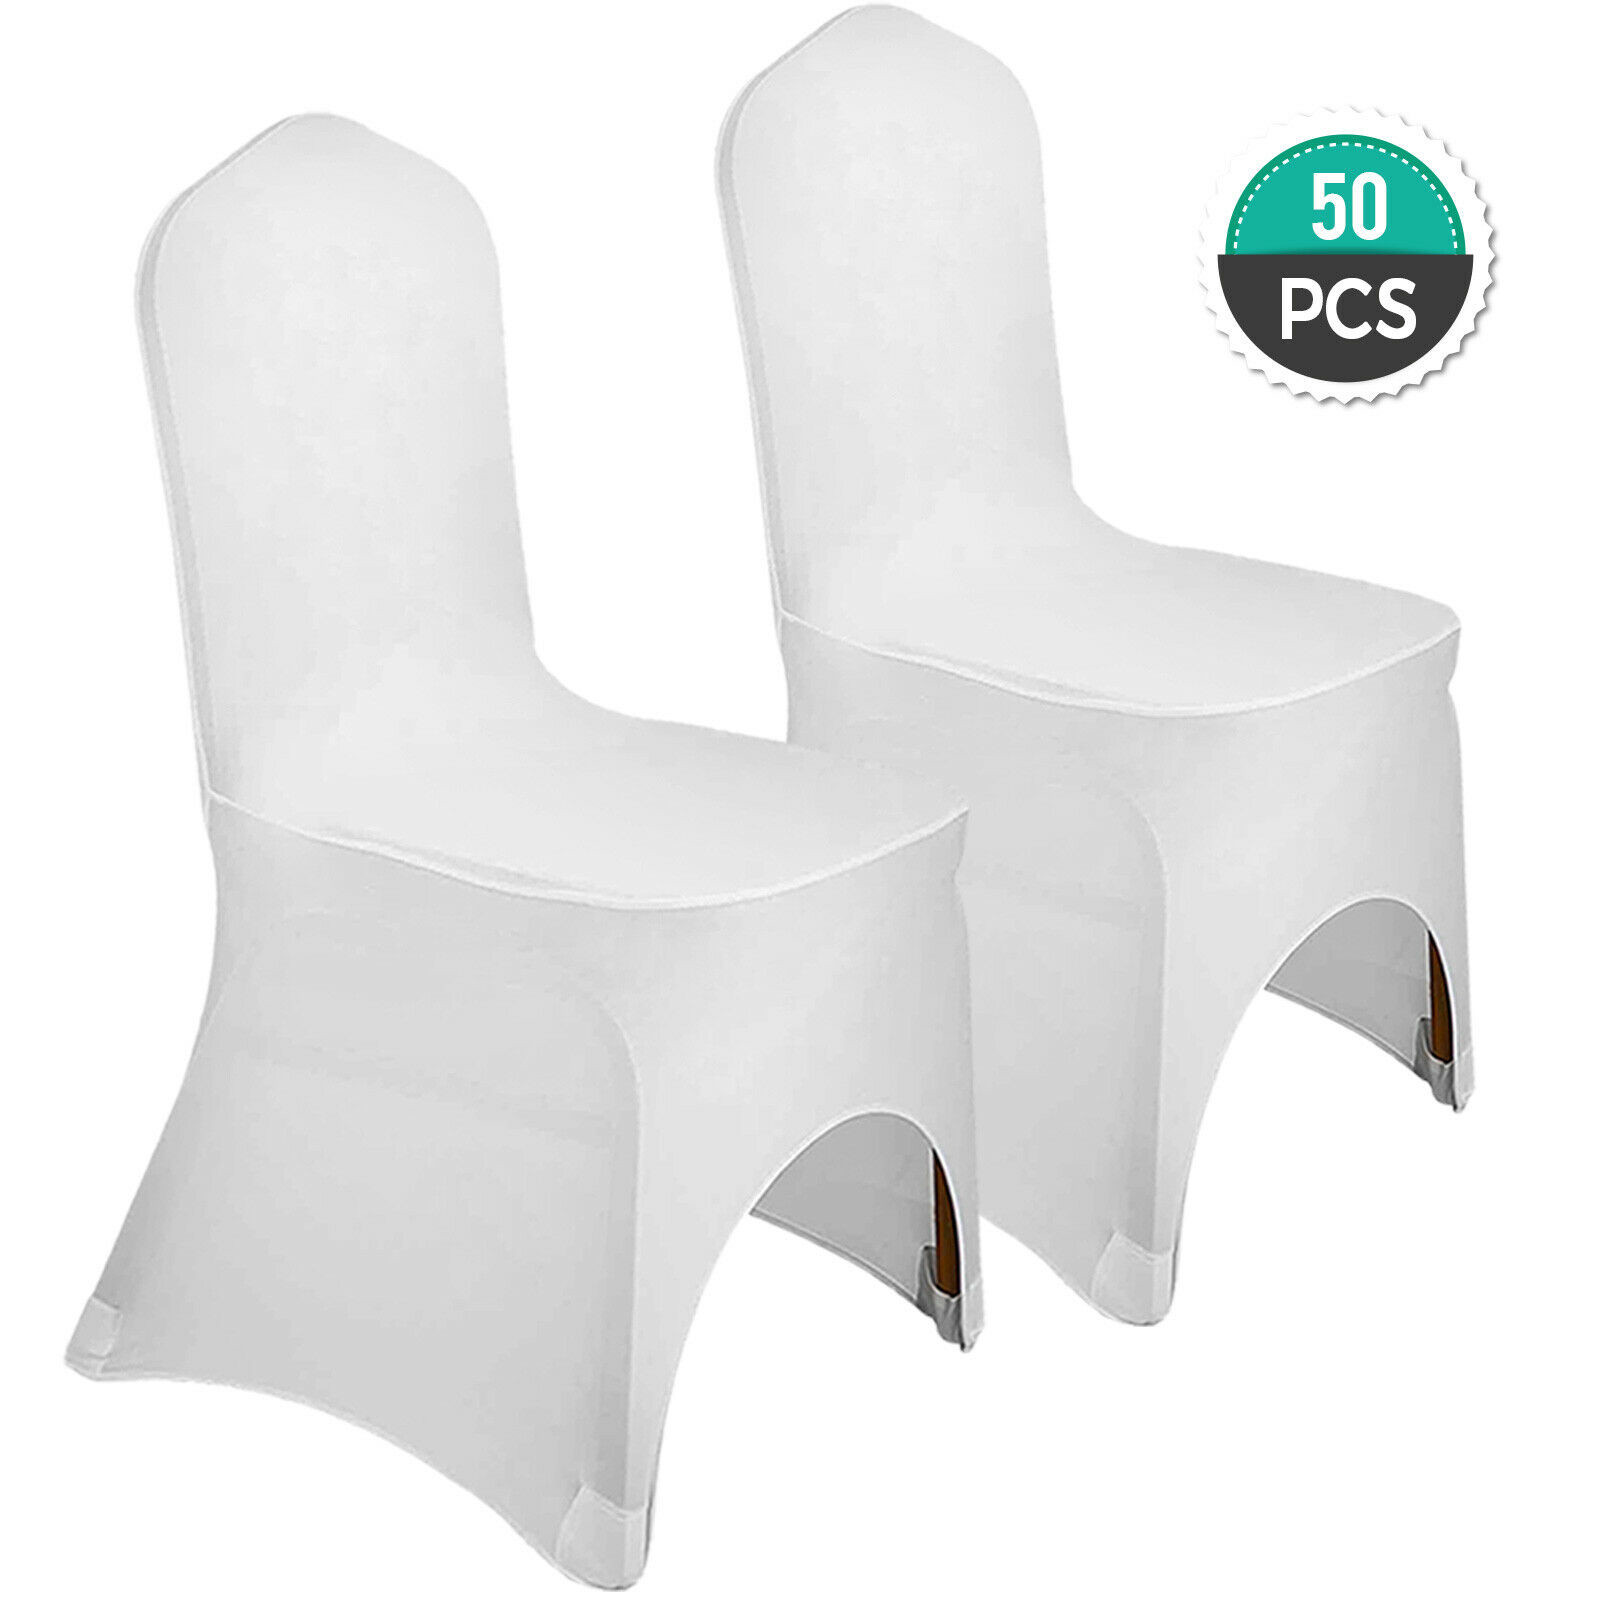 Wedding Supplies 50pcs Stretch Spandex Folding Chair Covers Black Banquet Easy Clean Decoration Home Garden Mbln Org